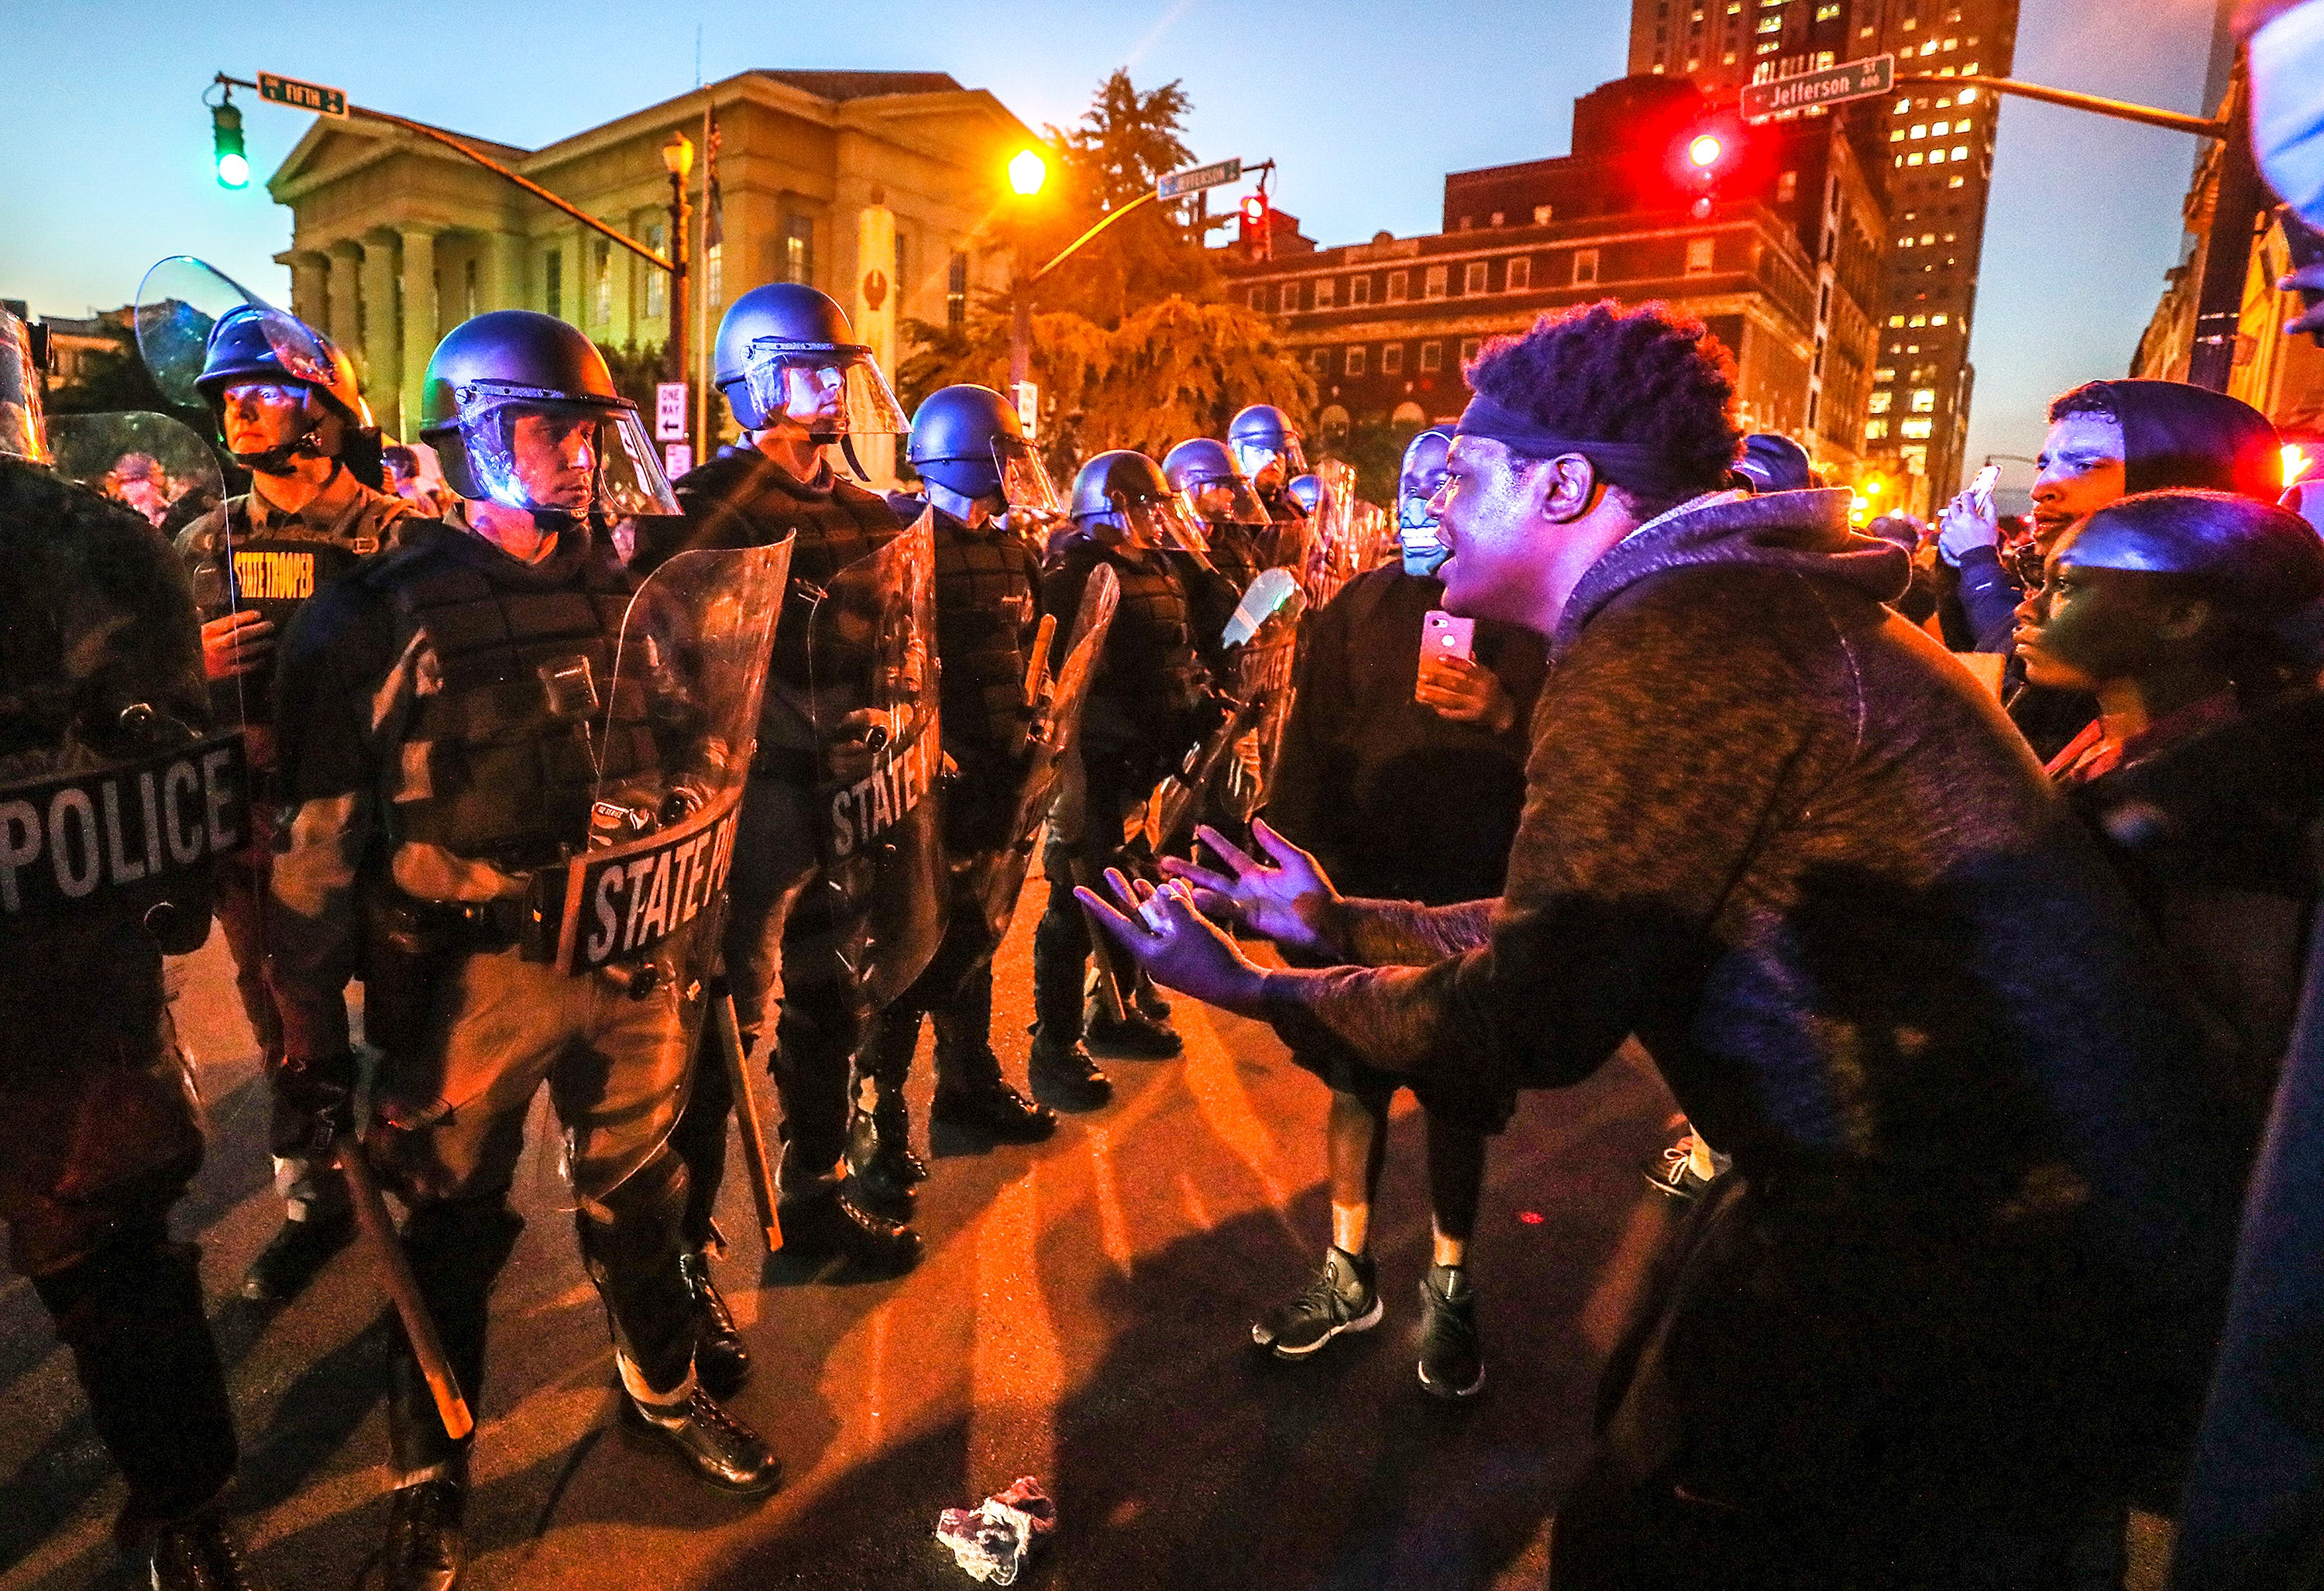 Protesters square off against the Kentucky State Police on 5th Street on Friday, May 29, 2020.